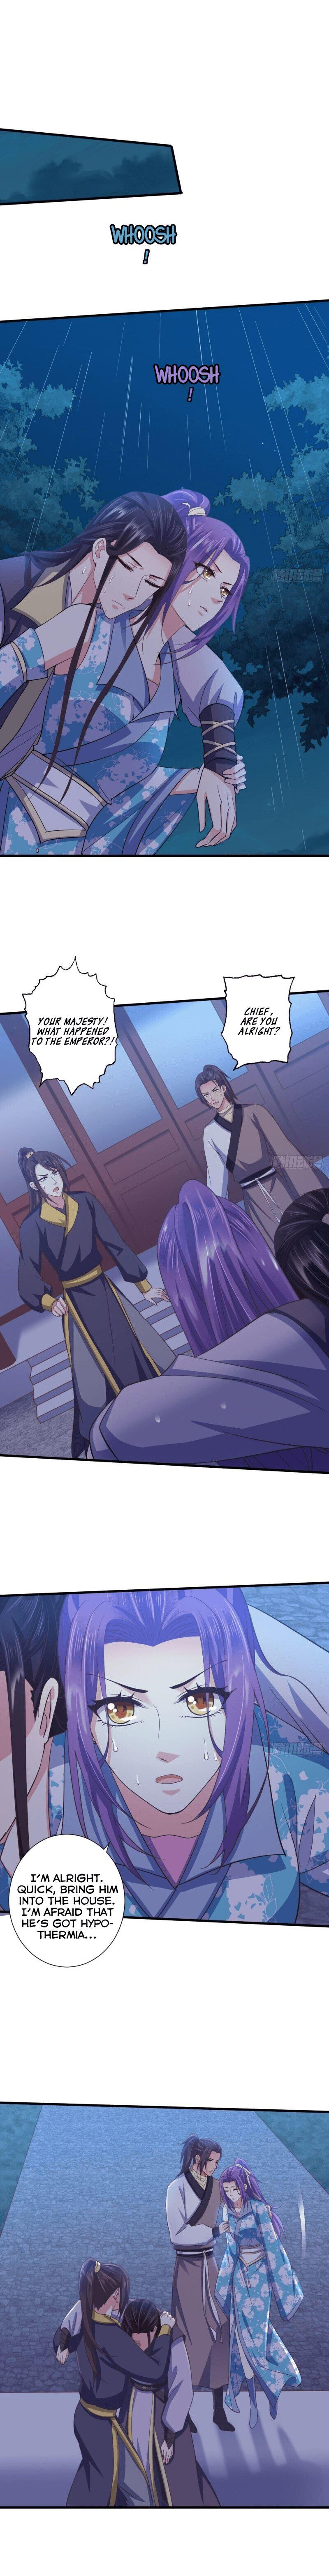 Bewitching Empress So Pampered By Her Tyrant Chapter 36: Poisoned Leg Wound page 2 - Mangakakalots.com